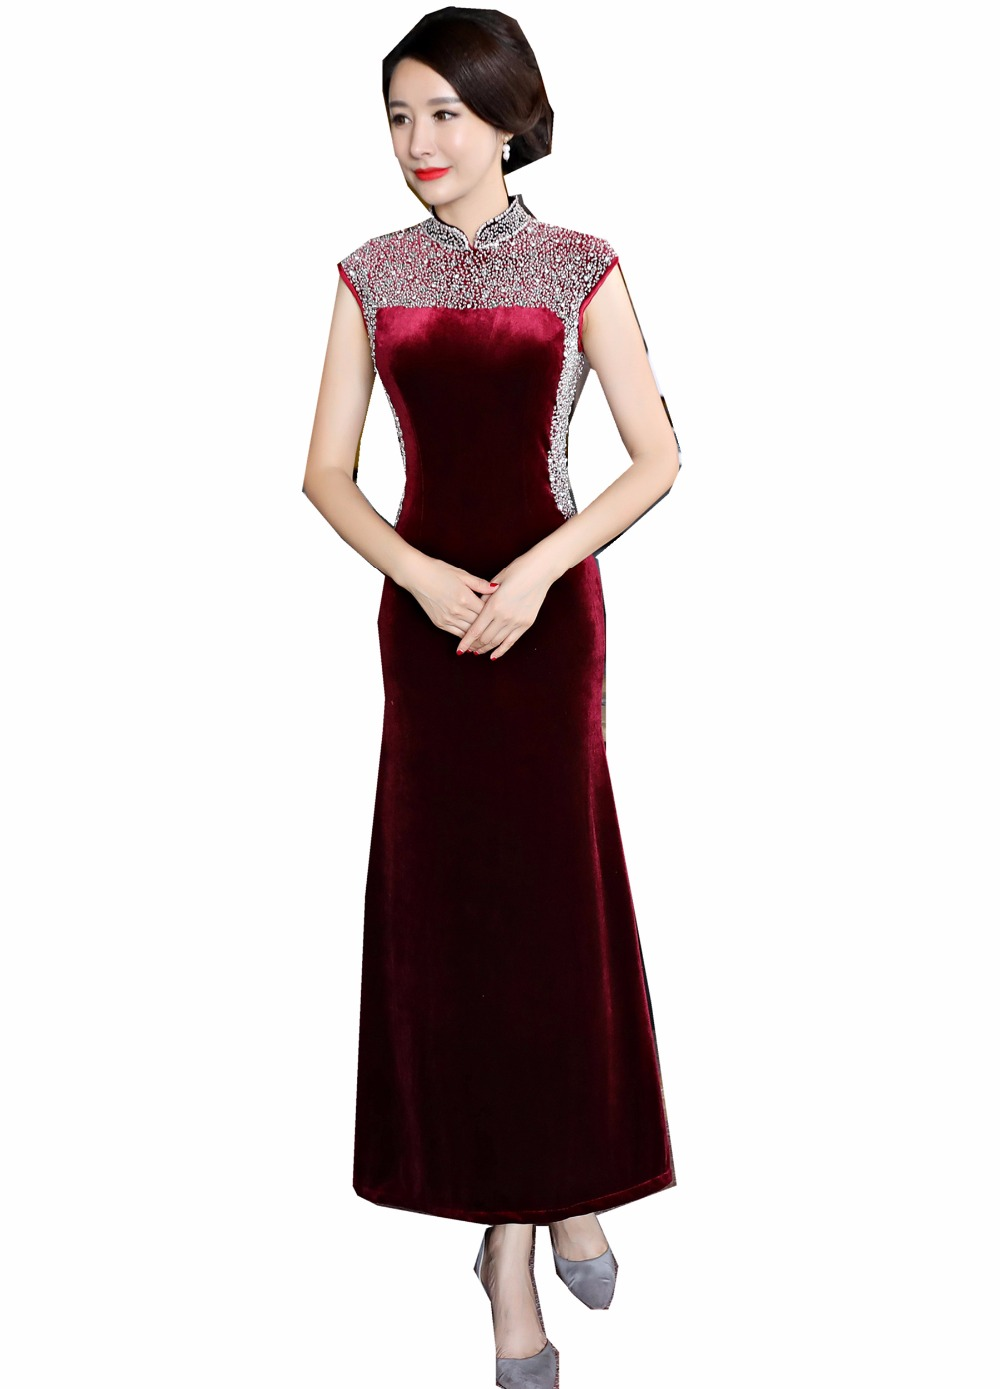 Shanghai Story chinese traditional dress Velvet Long Qipao chinese style Sleeveless Pearl Cheongsam dress Oriental Style Dress